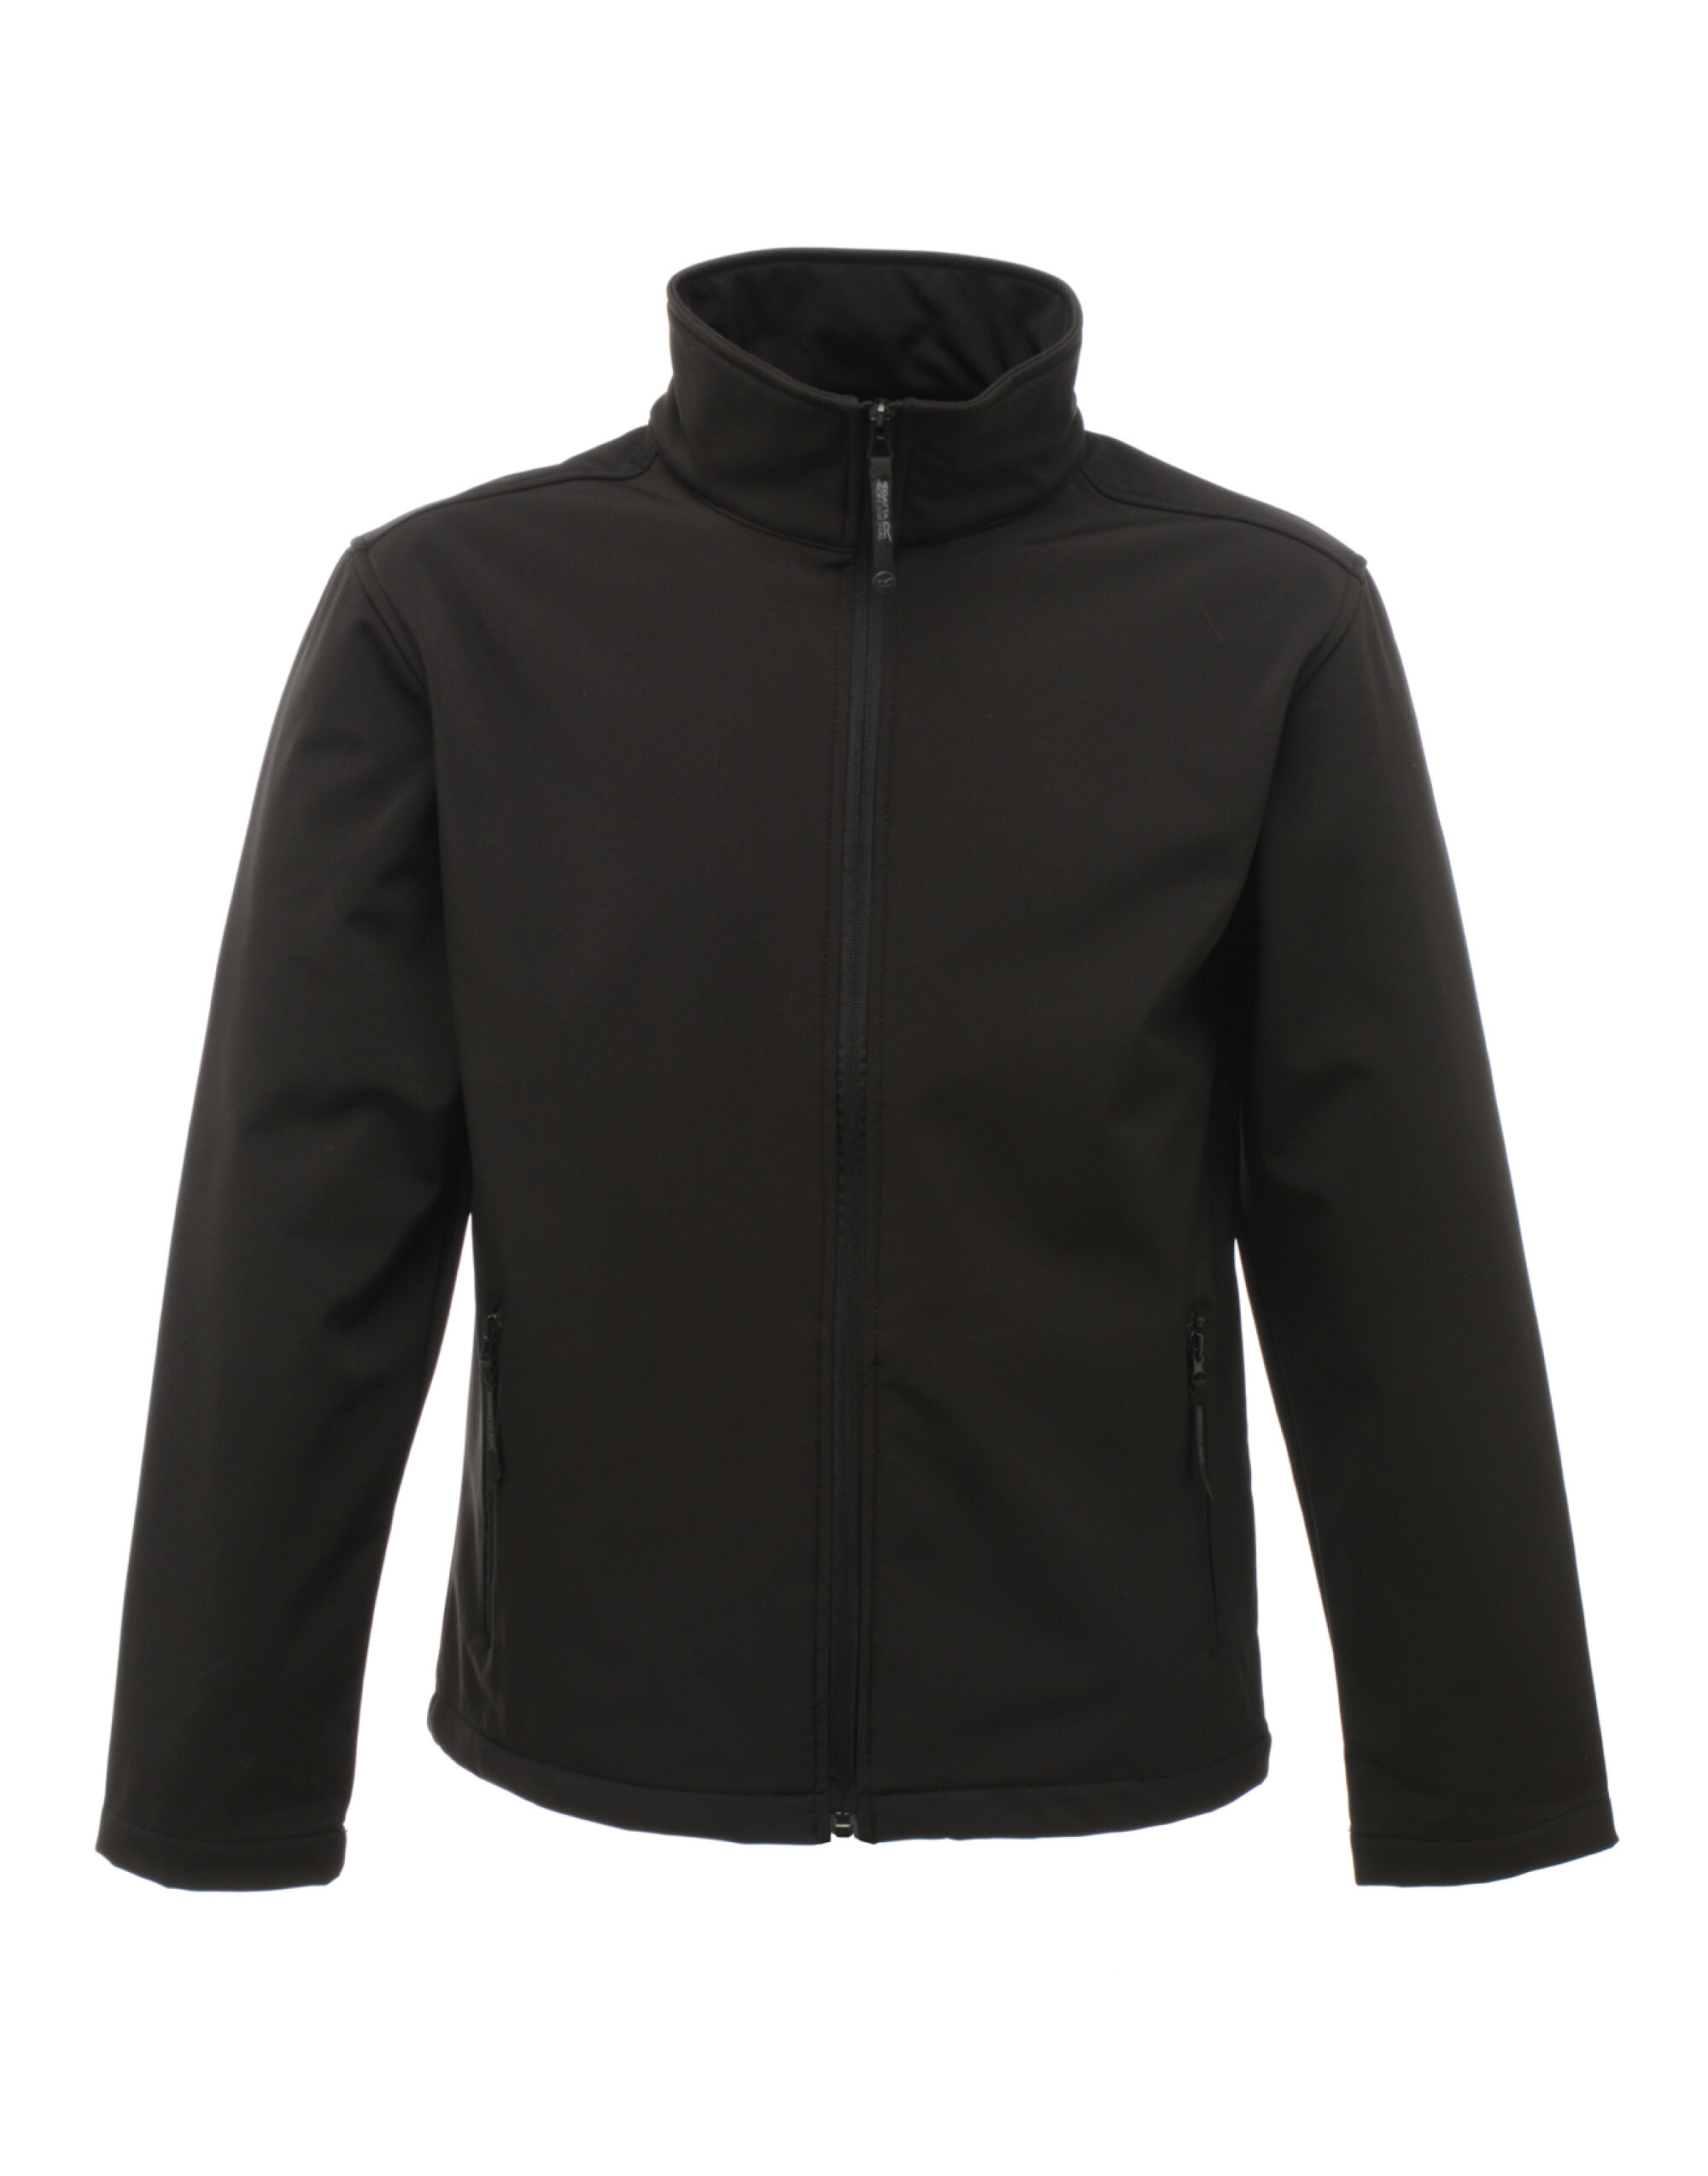 3 Layer Softshell